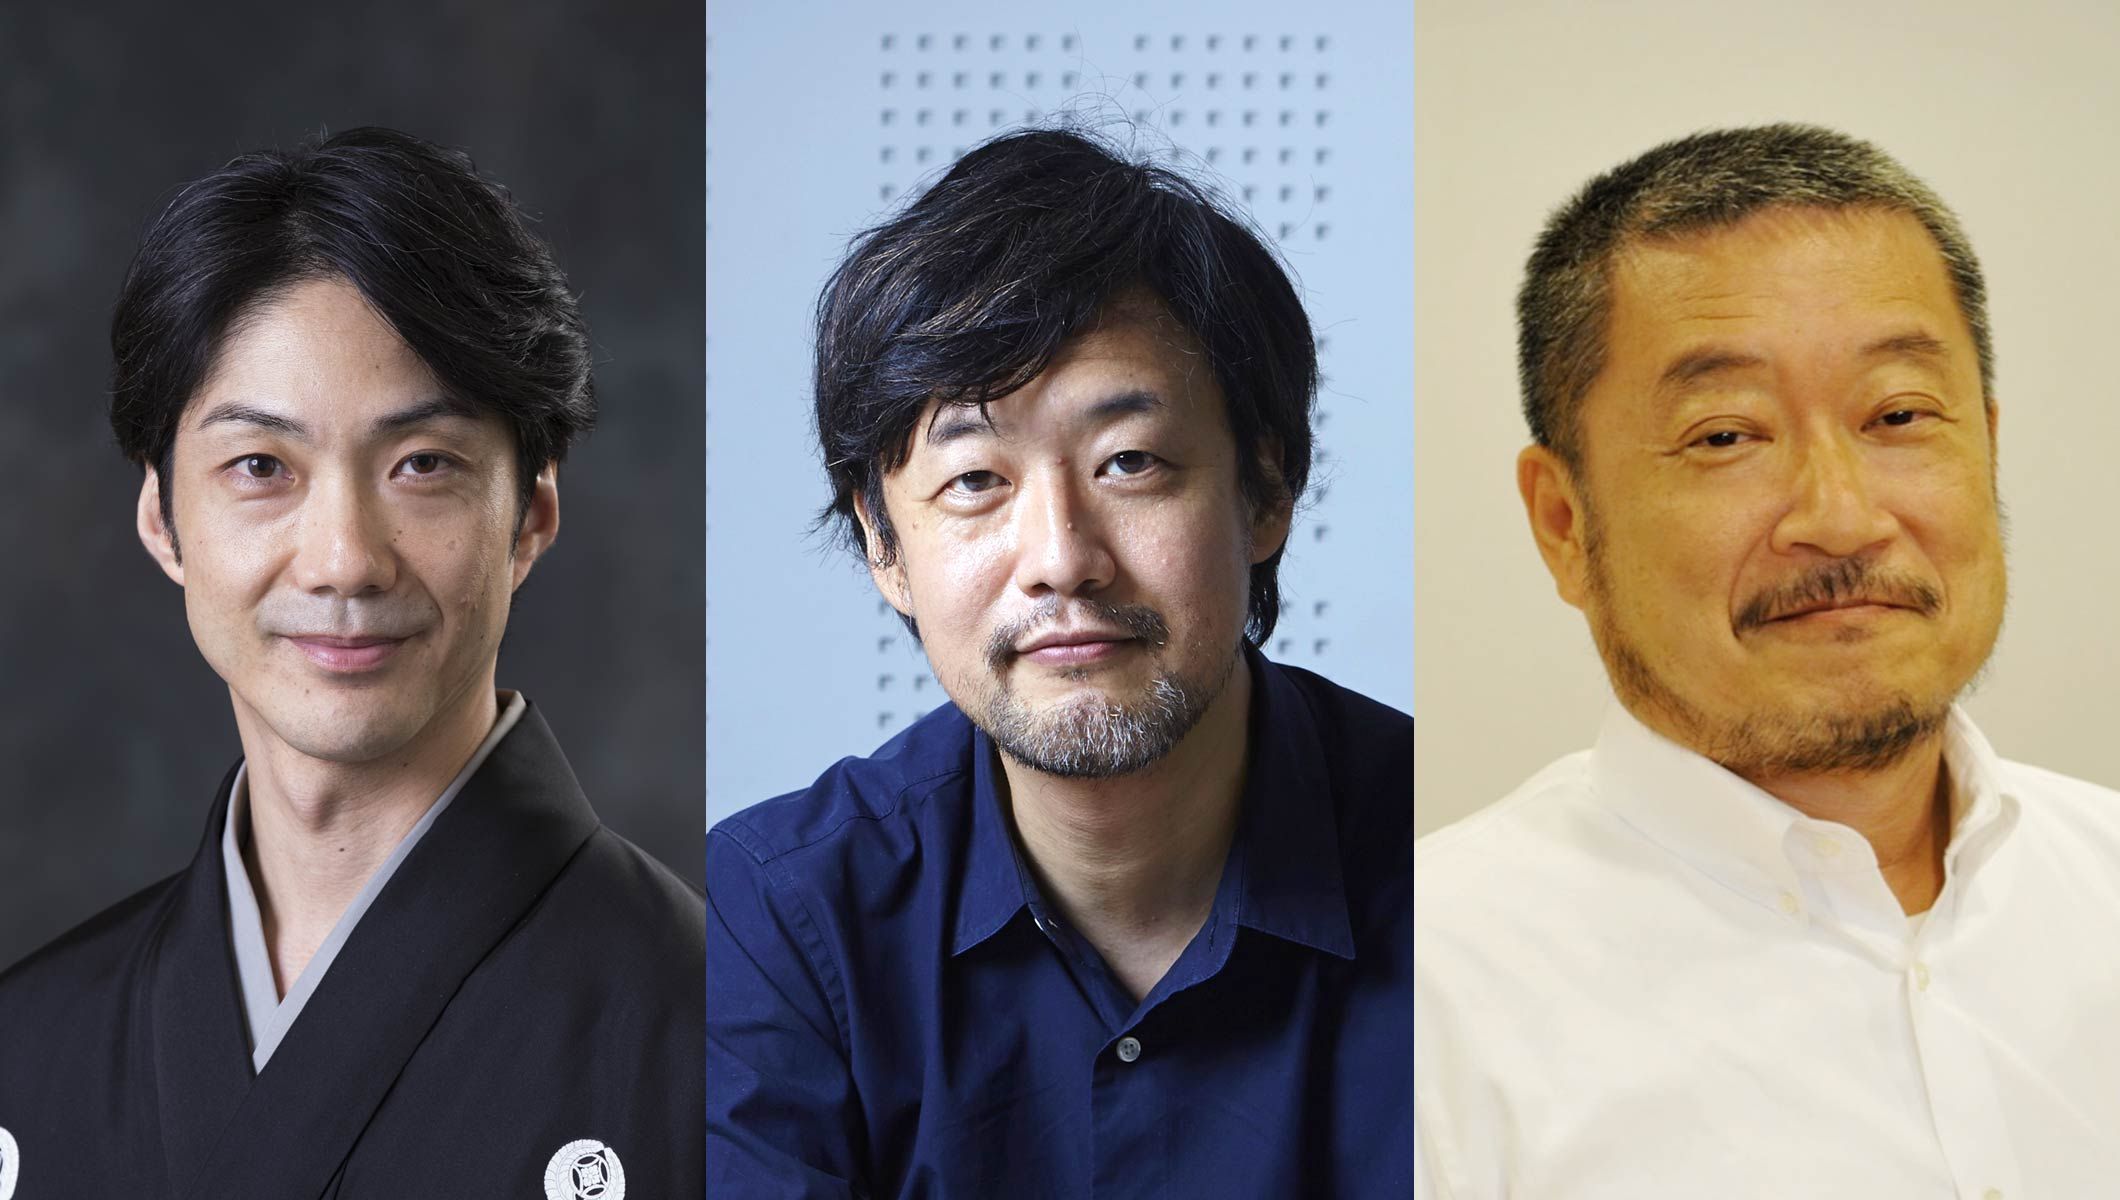 Tokyo 2020 Reveals Creative Directors For Opening And Closing Ceremonies